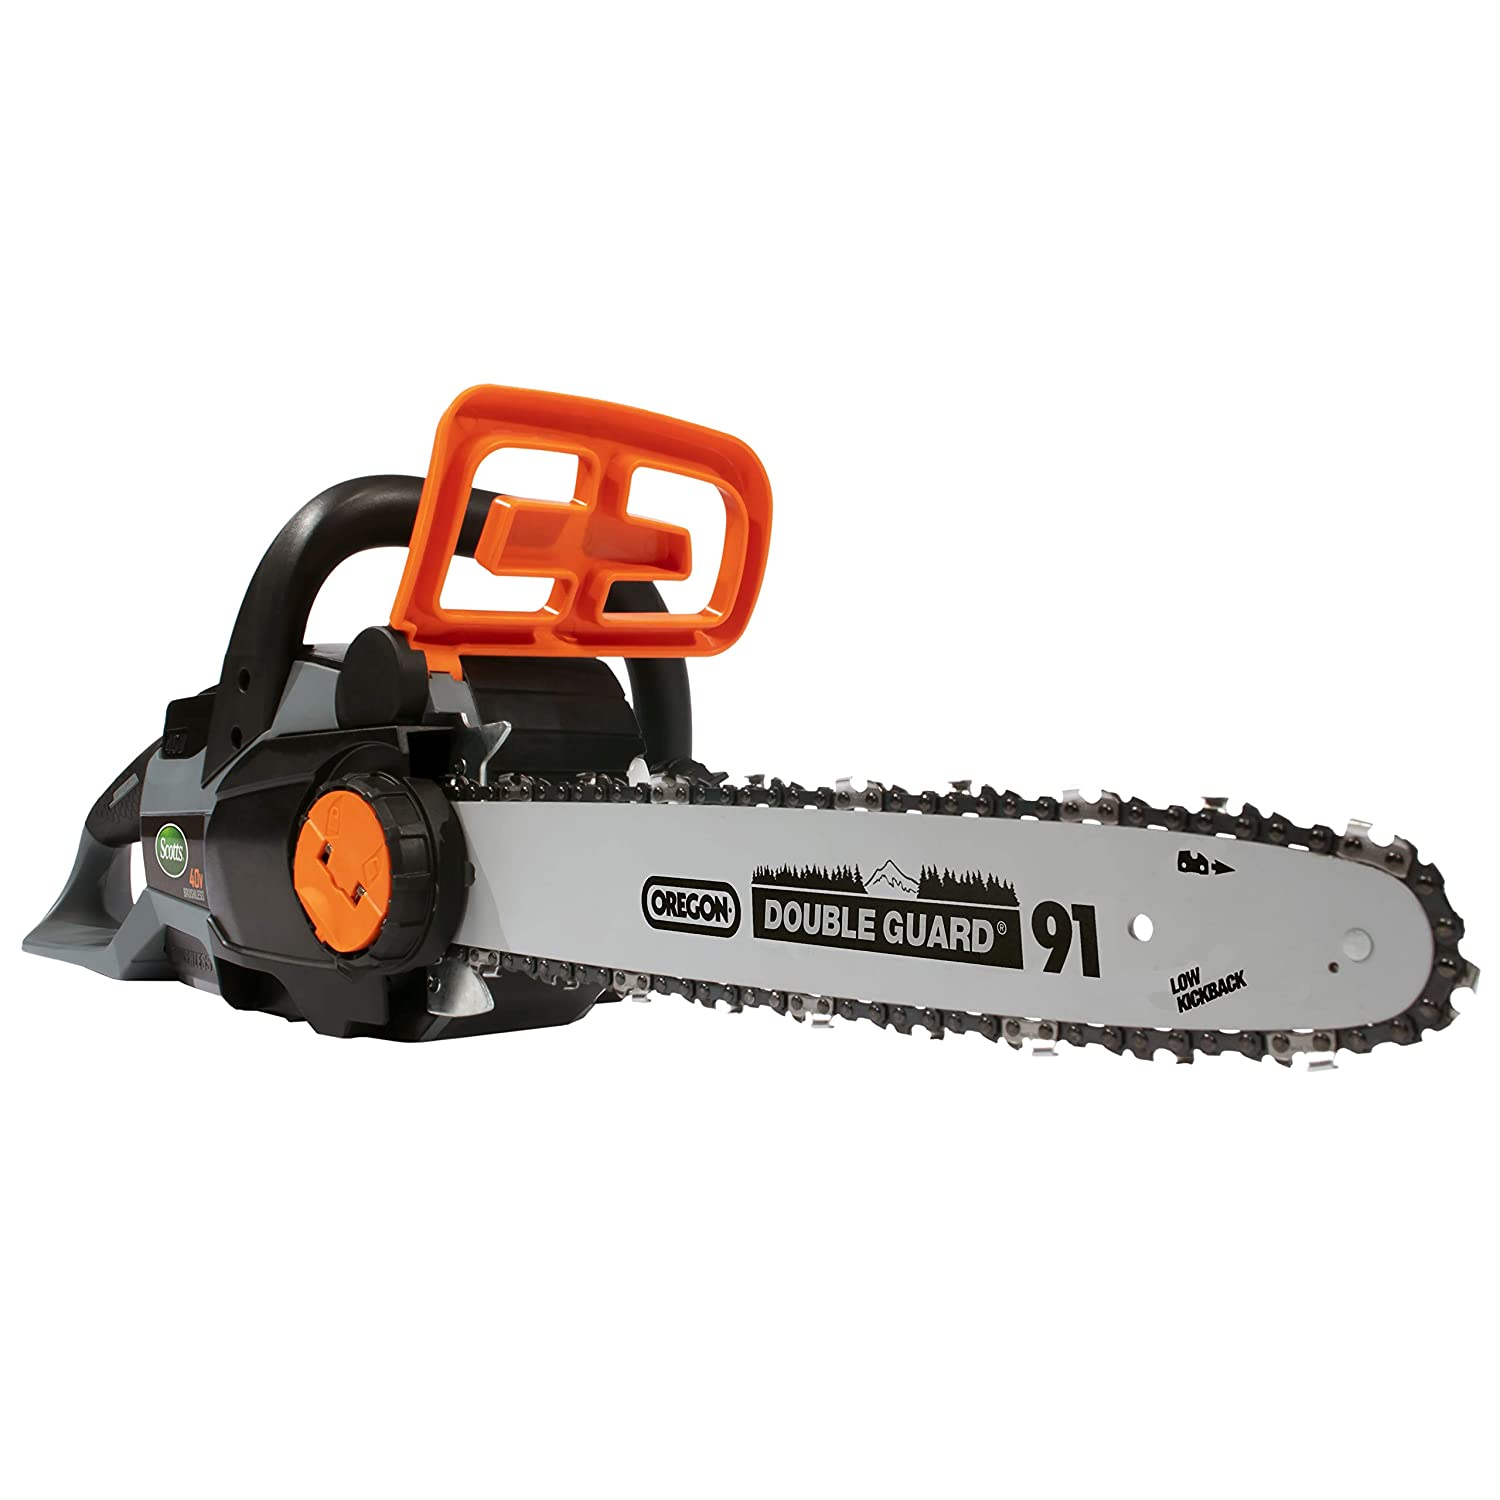 Scotts Outdoor Power Tools LCS31440S featured image